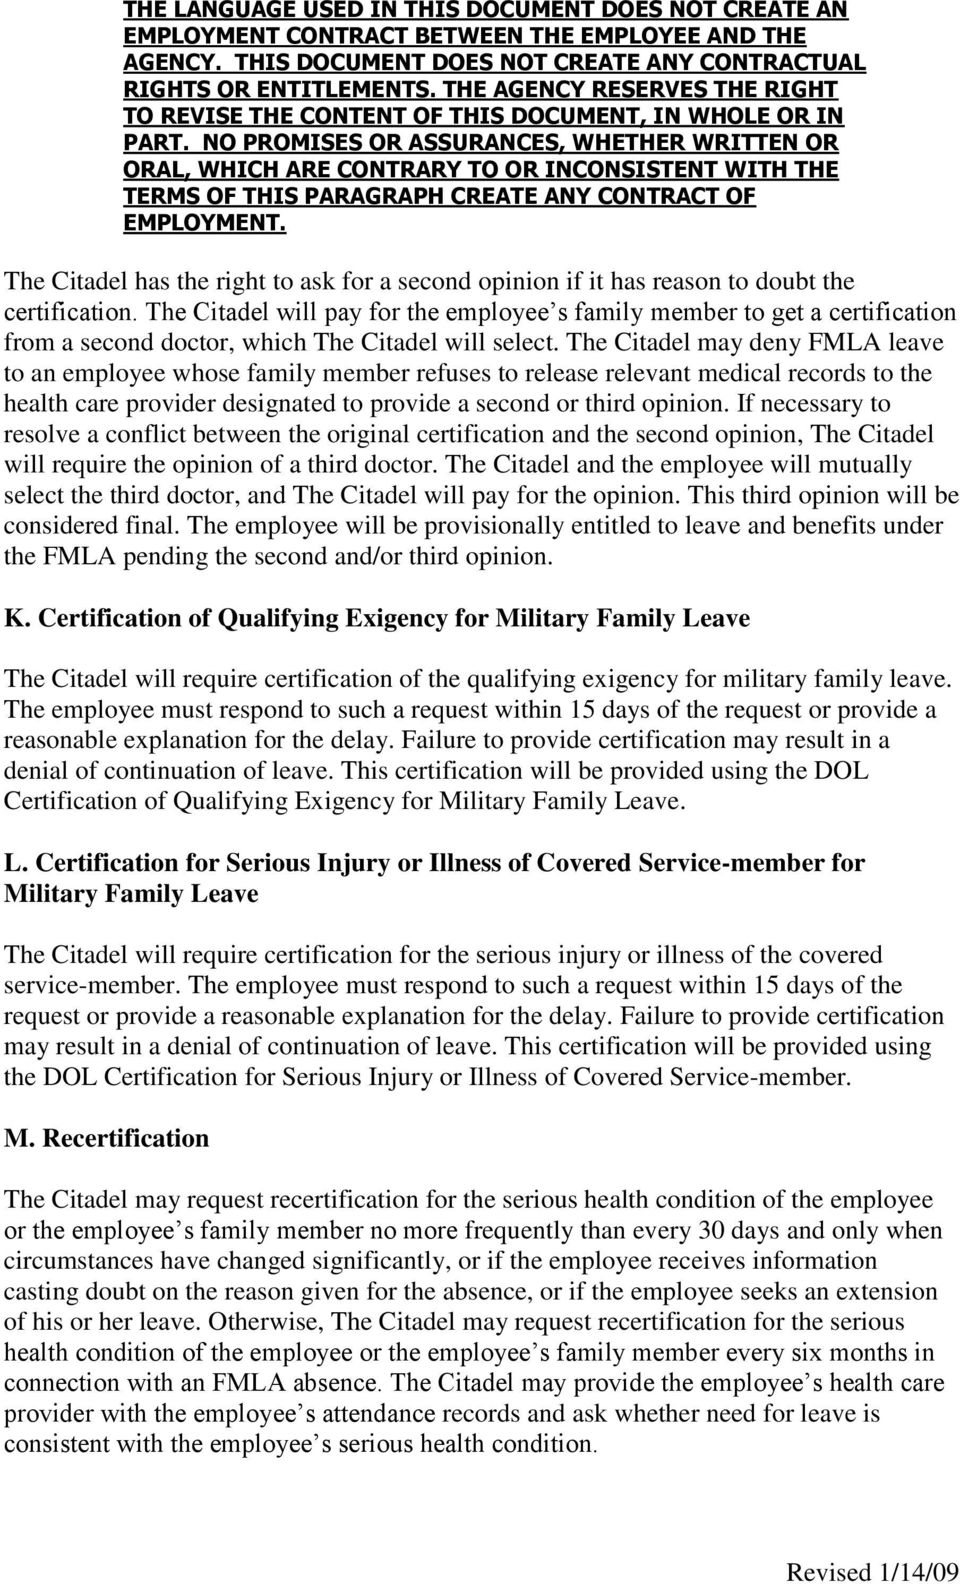 The Citadel may deny FMLA leave to an employee whose family member refuses to release relevant medical records to the health care provider designated to provide a second or third opinion.